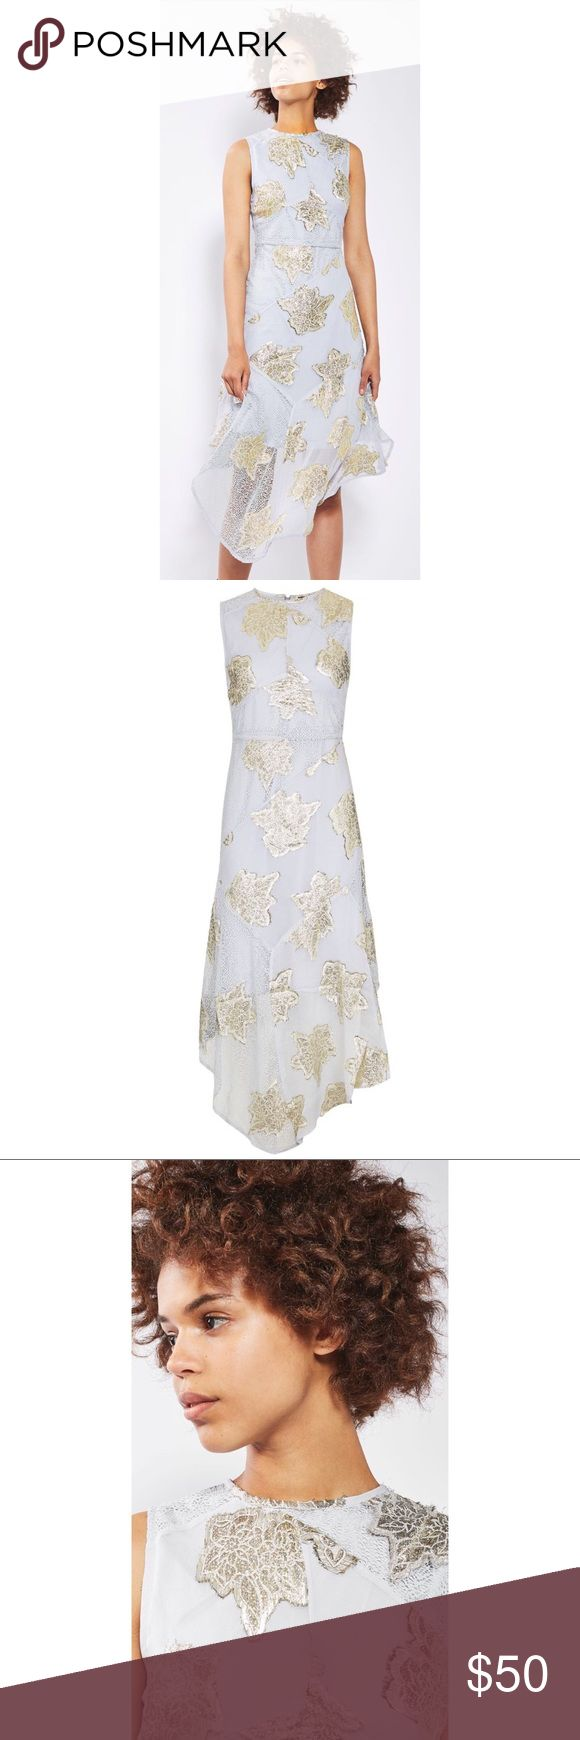 TOPSHOP Lilac Floral Metallic Hanky Hem Lace Dress New With Tags! TOPSHOP Lilac Metallic Tinsel Floral Hanky Hem Lace Midi Dress US Size 6 Make a style statement with our hanky hem line midi dress.  Embellished with striking gold floral details, the uneven hem and fresh white fabric make this thirties inspired dress a chic choice for special occasions this season.  84% Viscose, 16% Metallic fibre.  Machine wash. Colour: LILAC Sold Out In All Stores And Online! Please Review All Photos Prior…